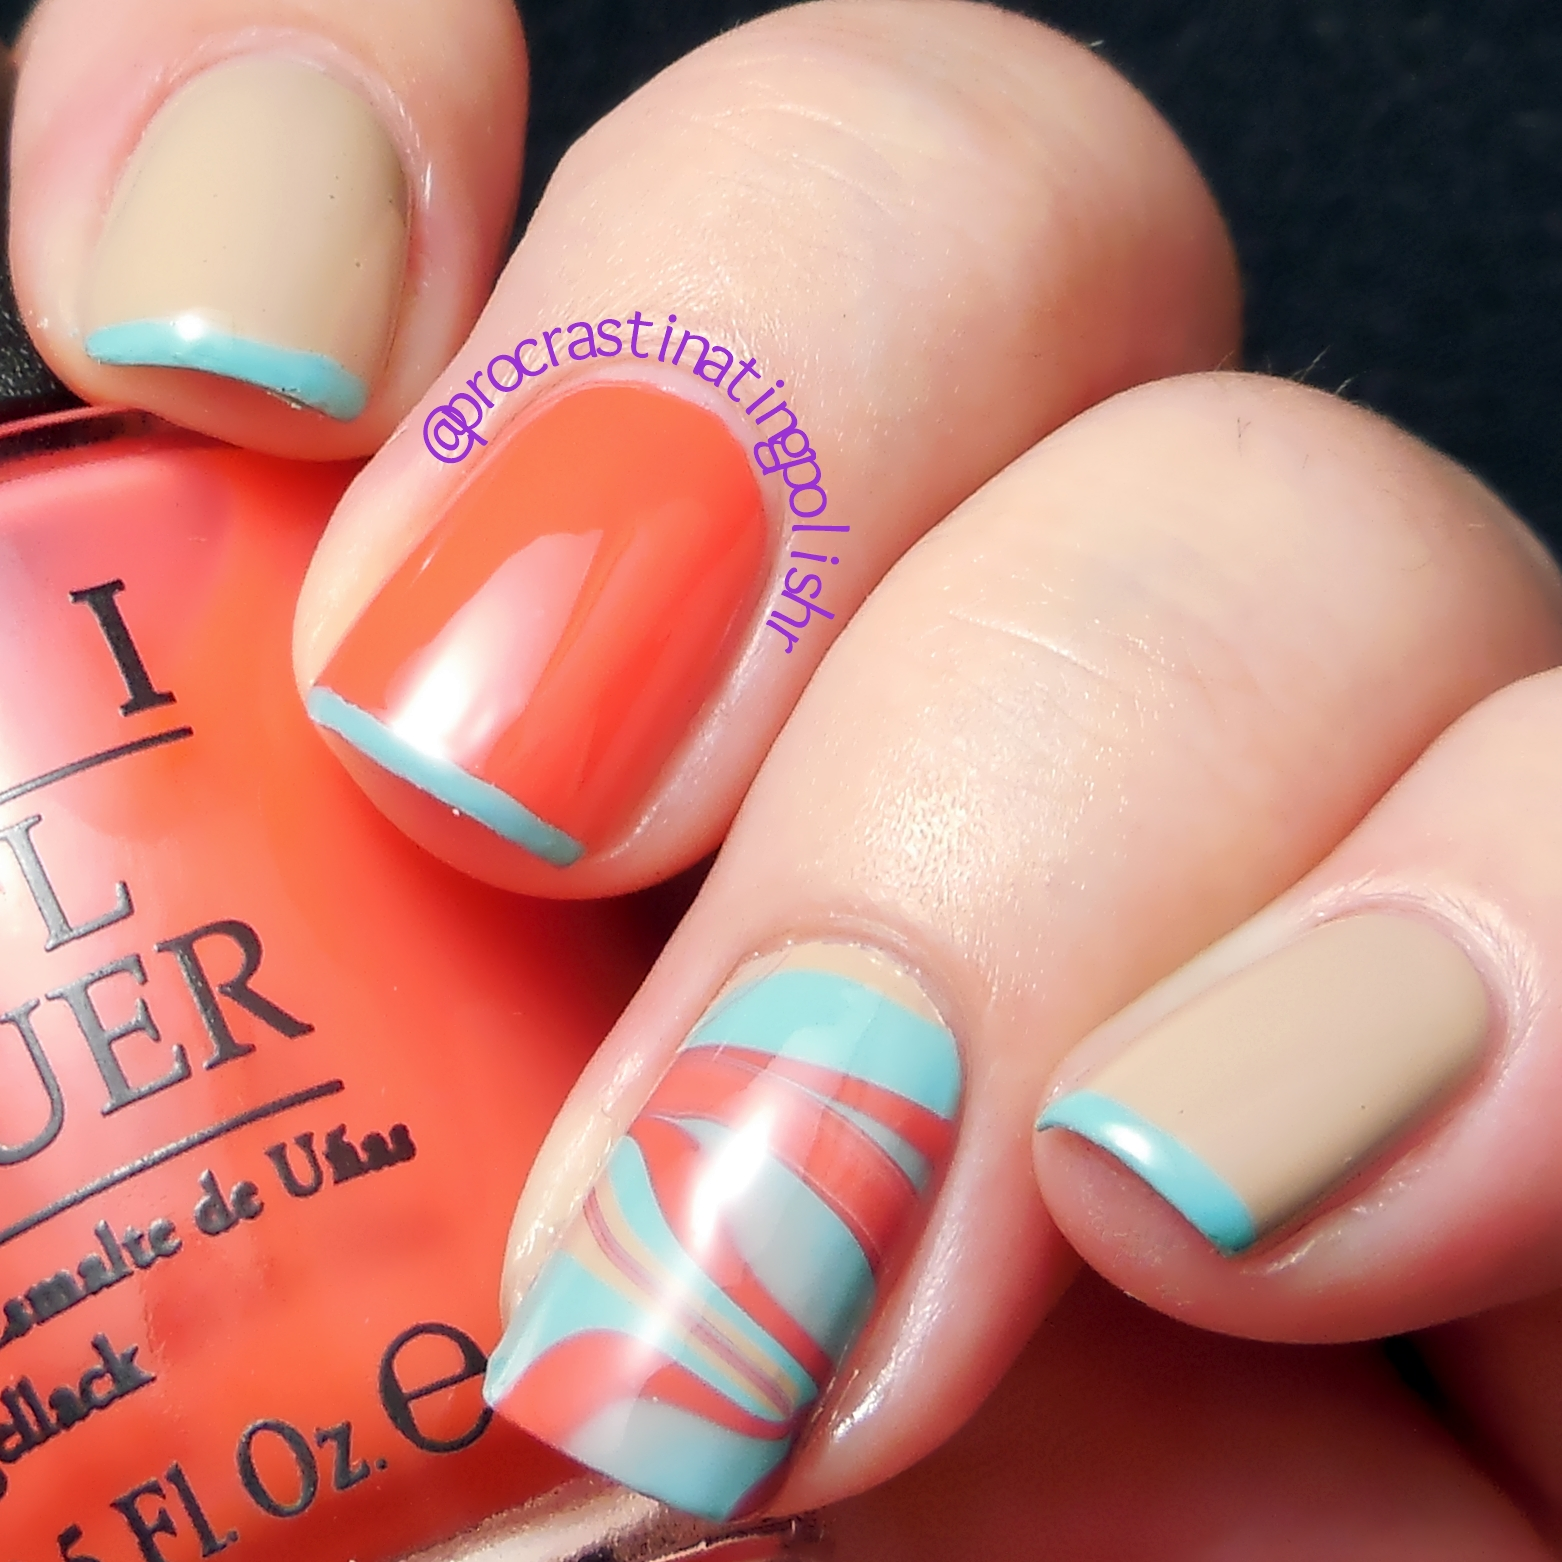 Tri Polish Tuesday - Turquoise Tips and Water Marbling Nail Art